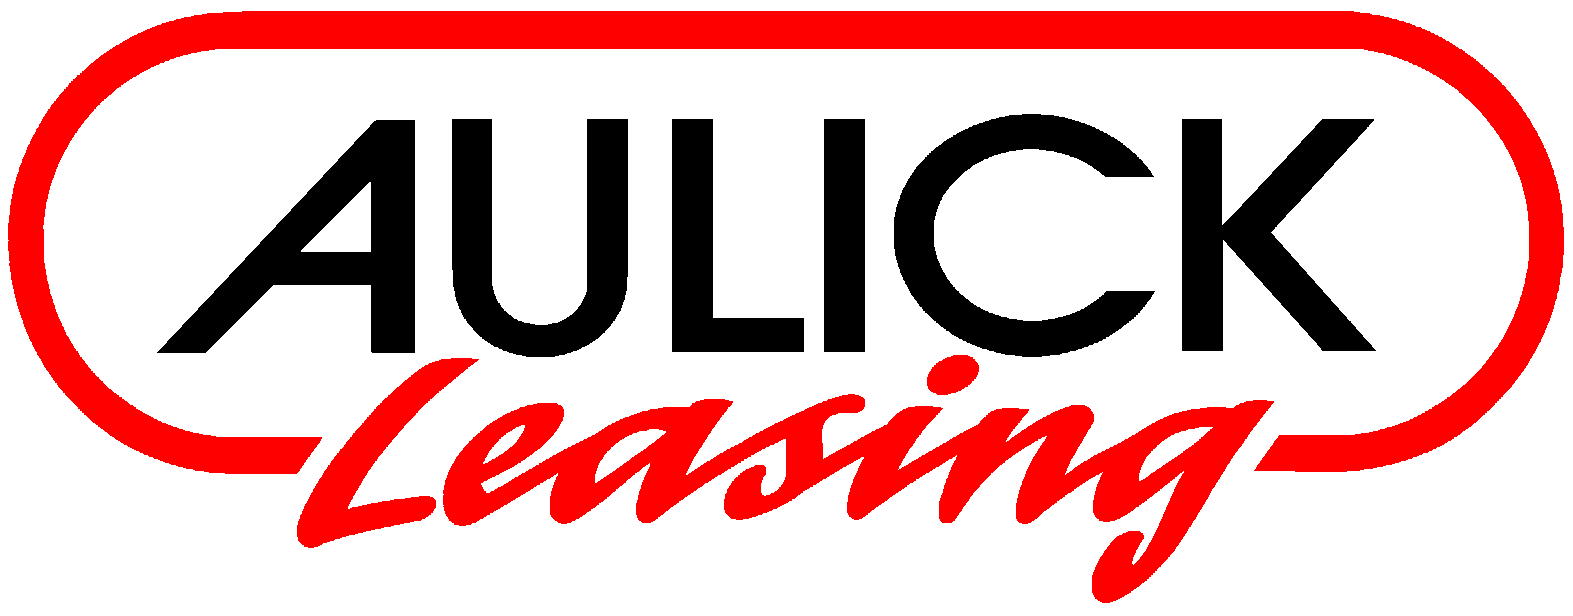 Aulick Leasing Corp. Logo